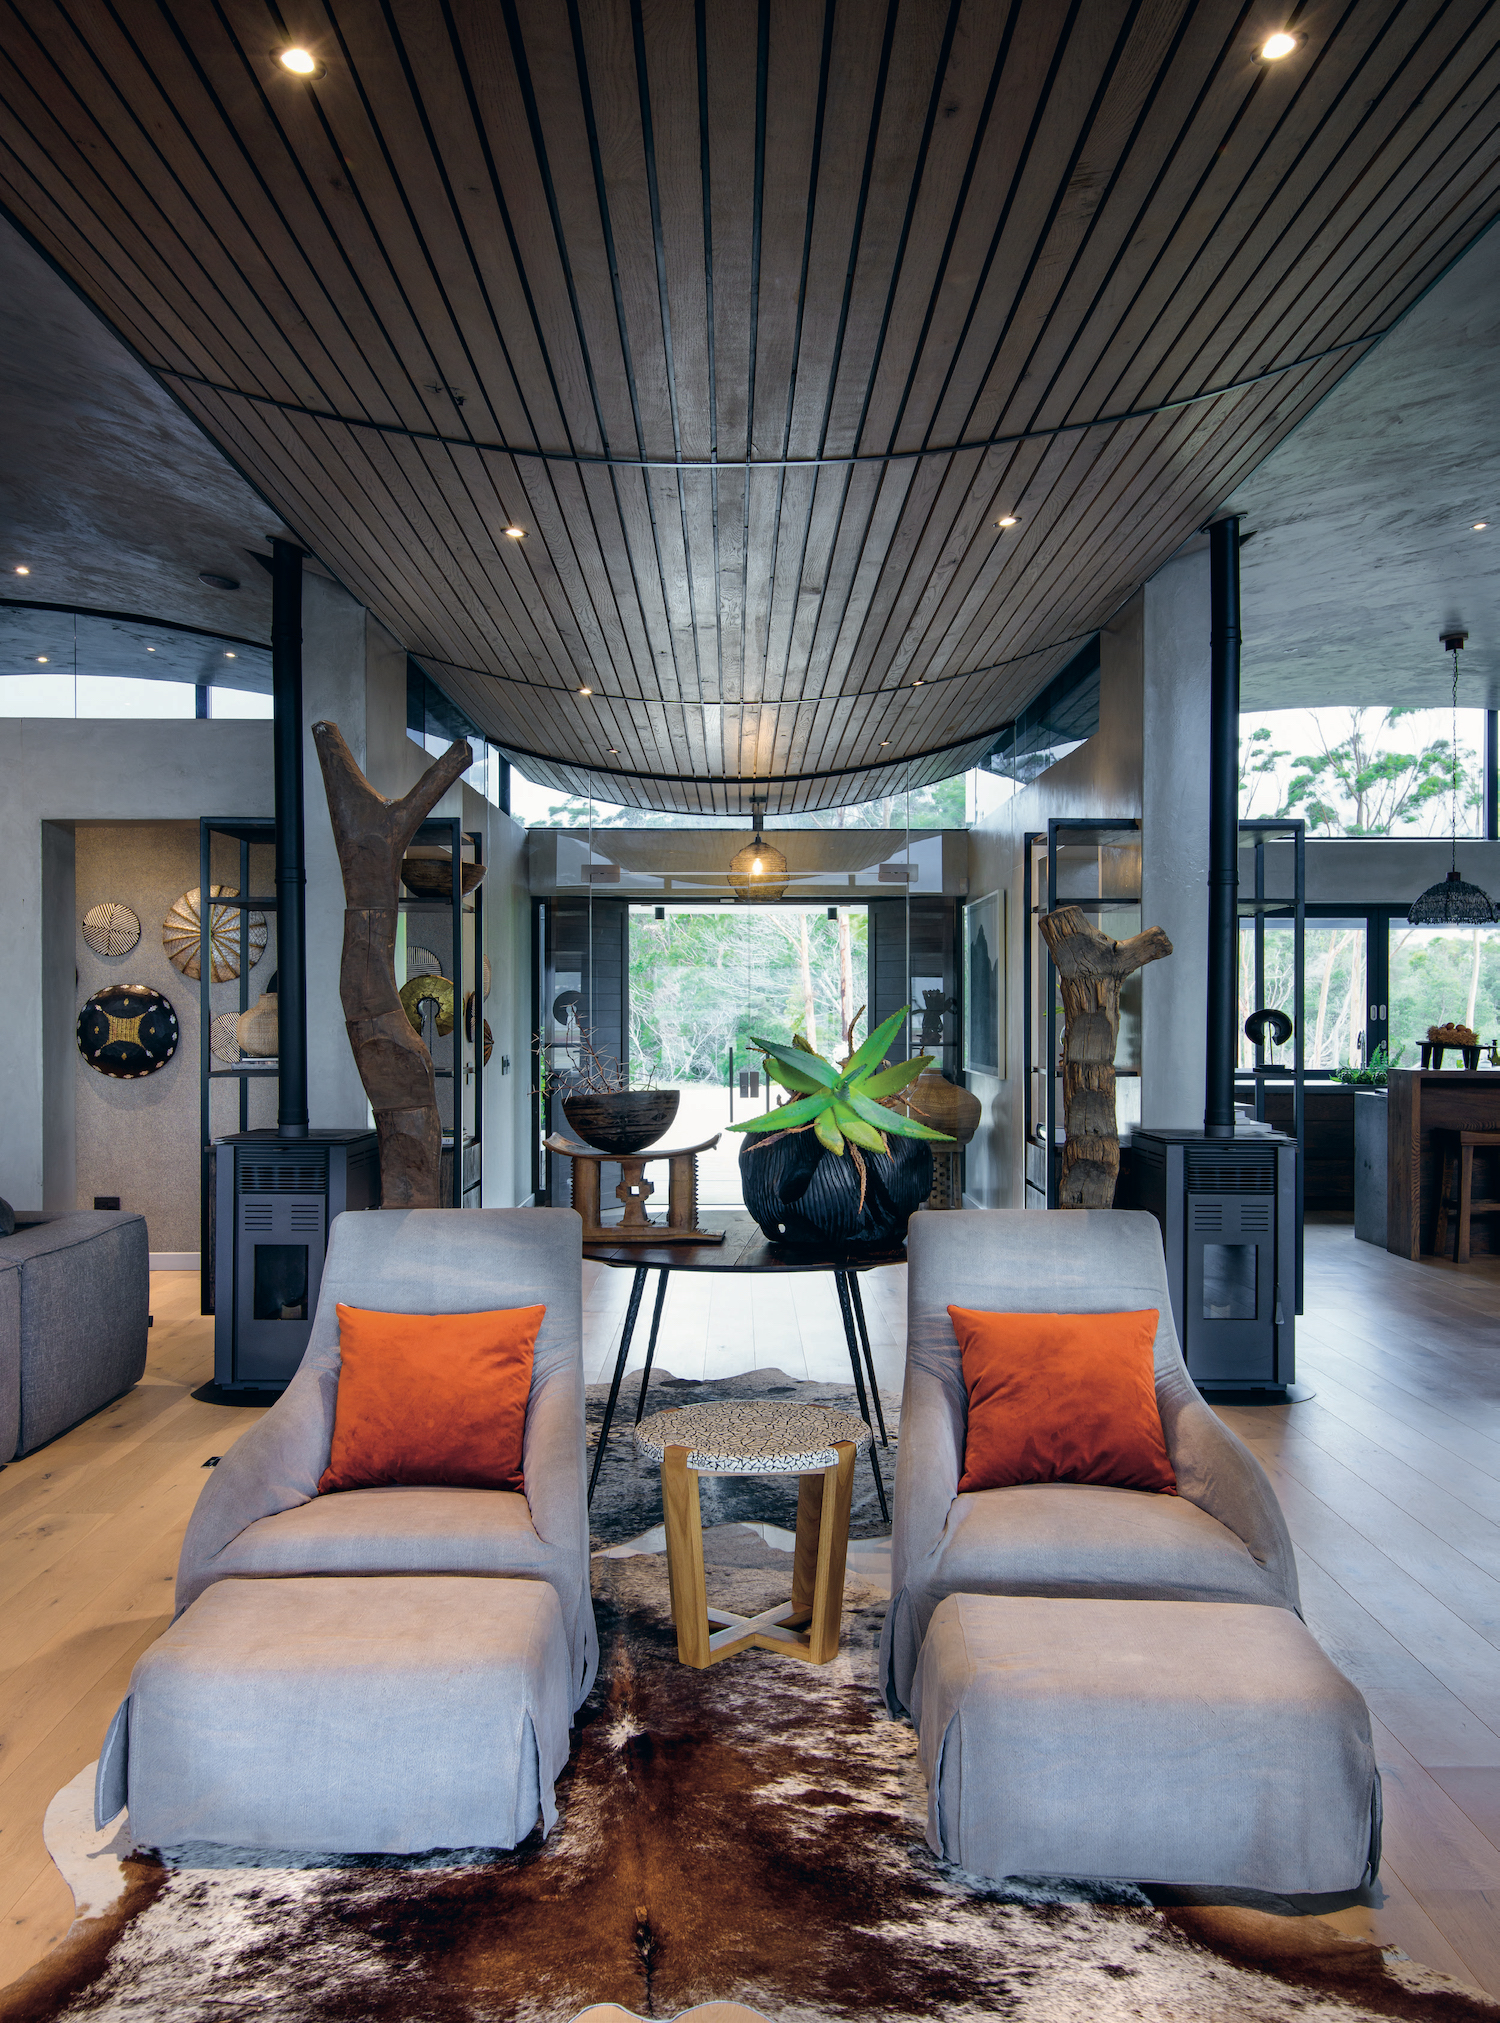 The view from the deck through the villa. The spacious open-plan common area is divided into a lounge and dining space, leading into the kitchen beyond.